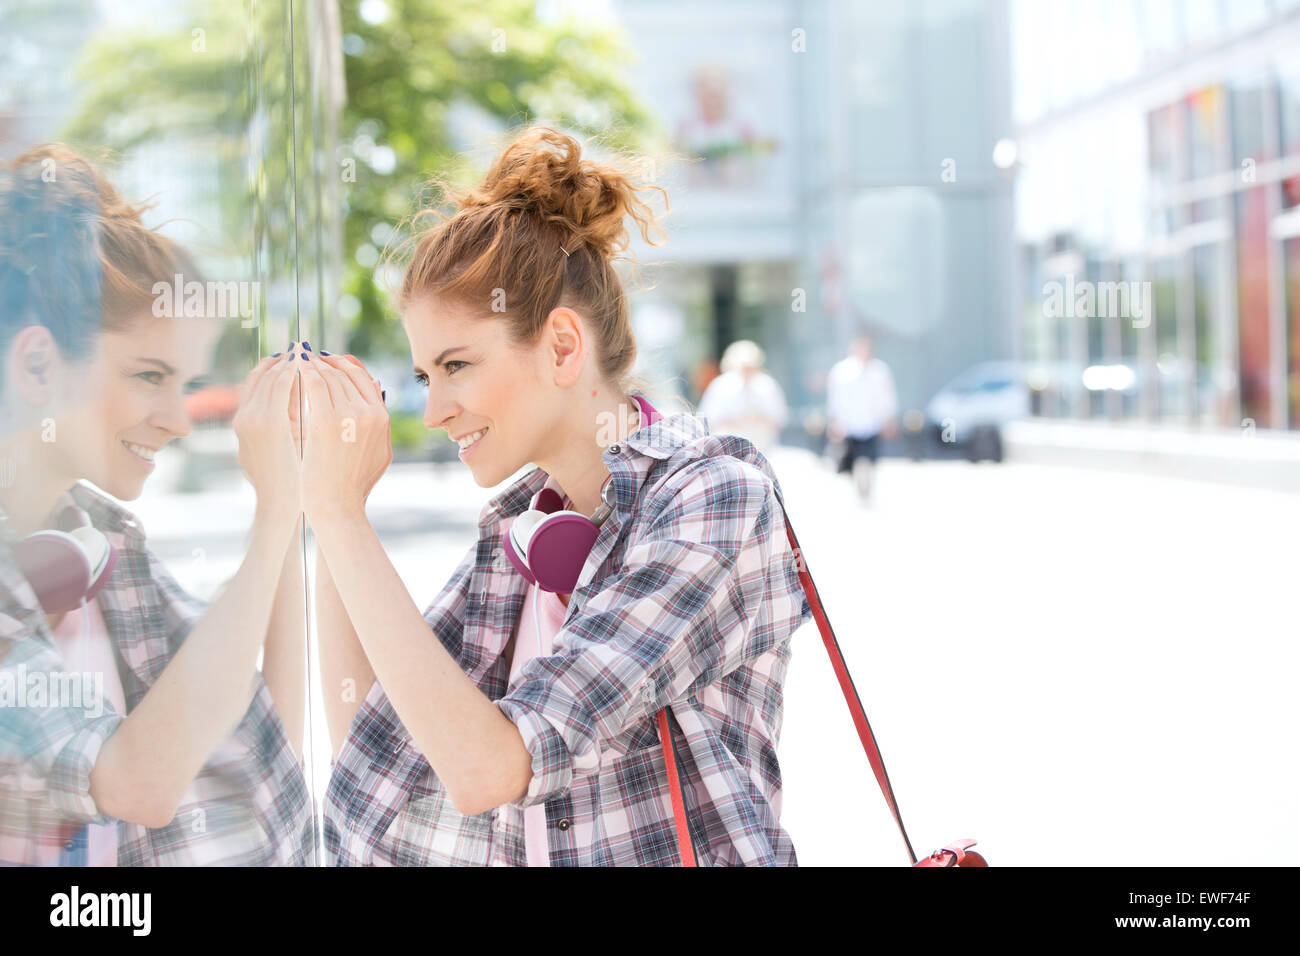 Side view of happy woman window shopping in city - Stock Image